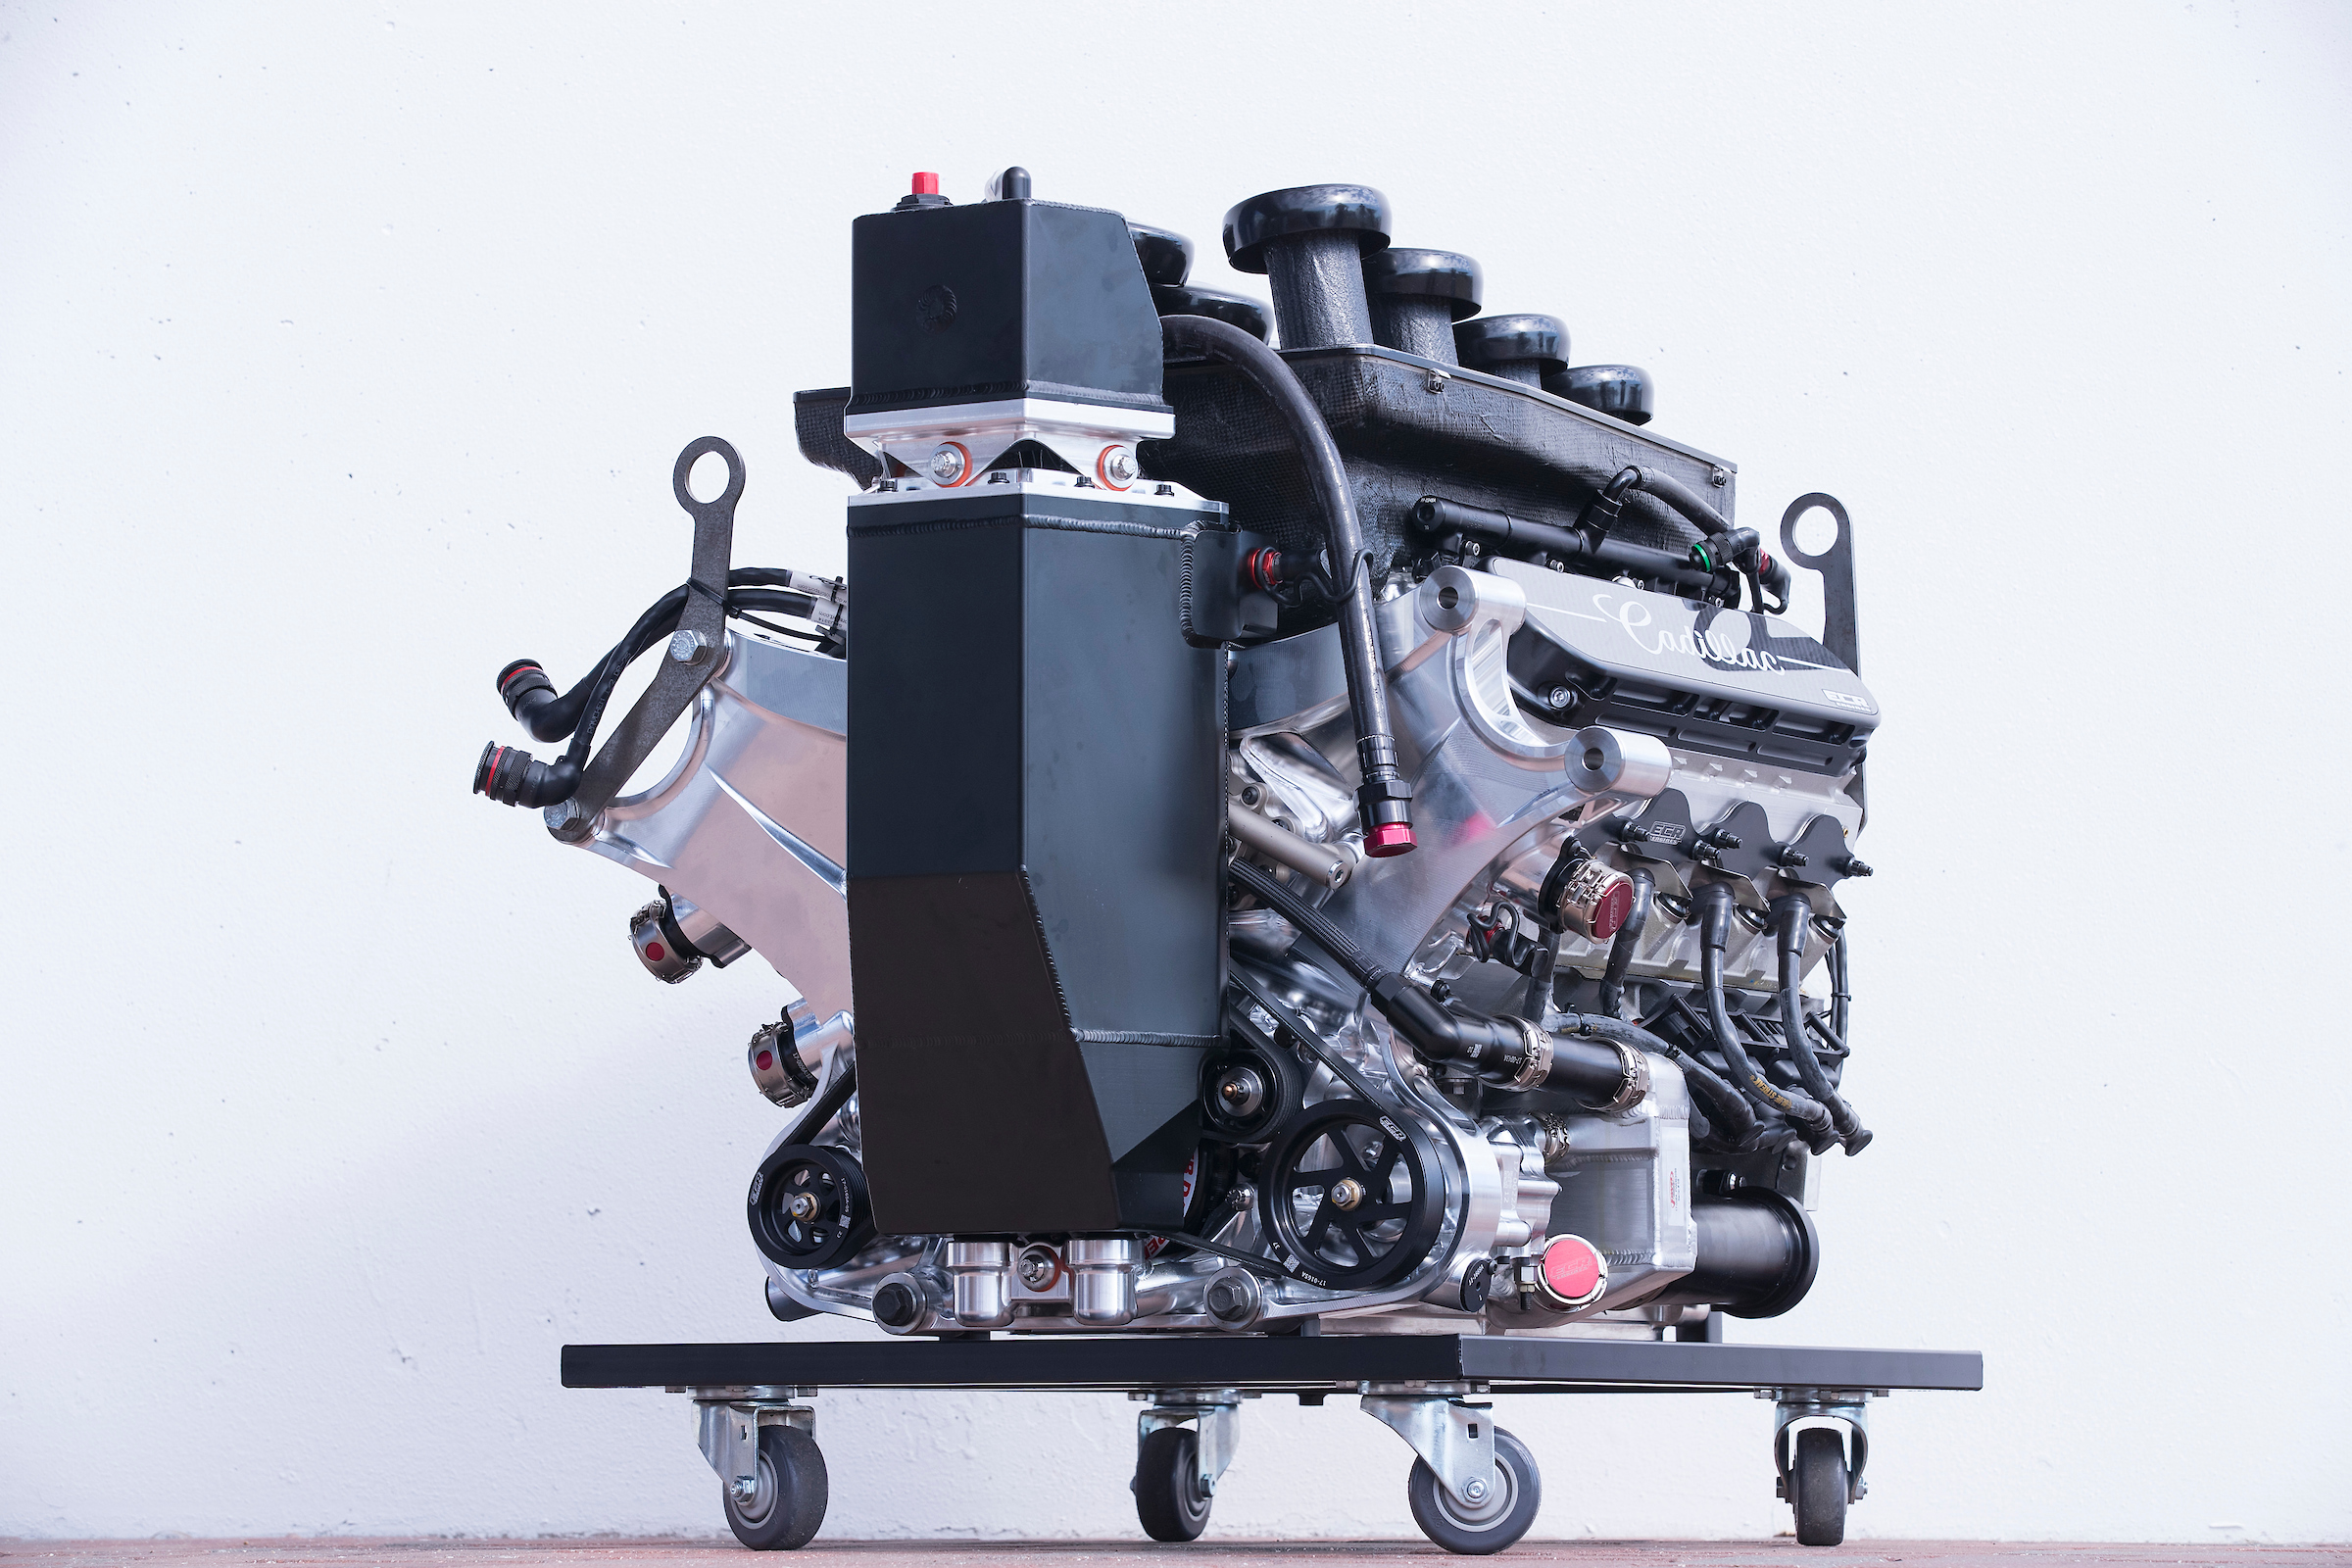 Cadillac ECR V8 Engine On Dolly